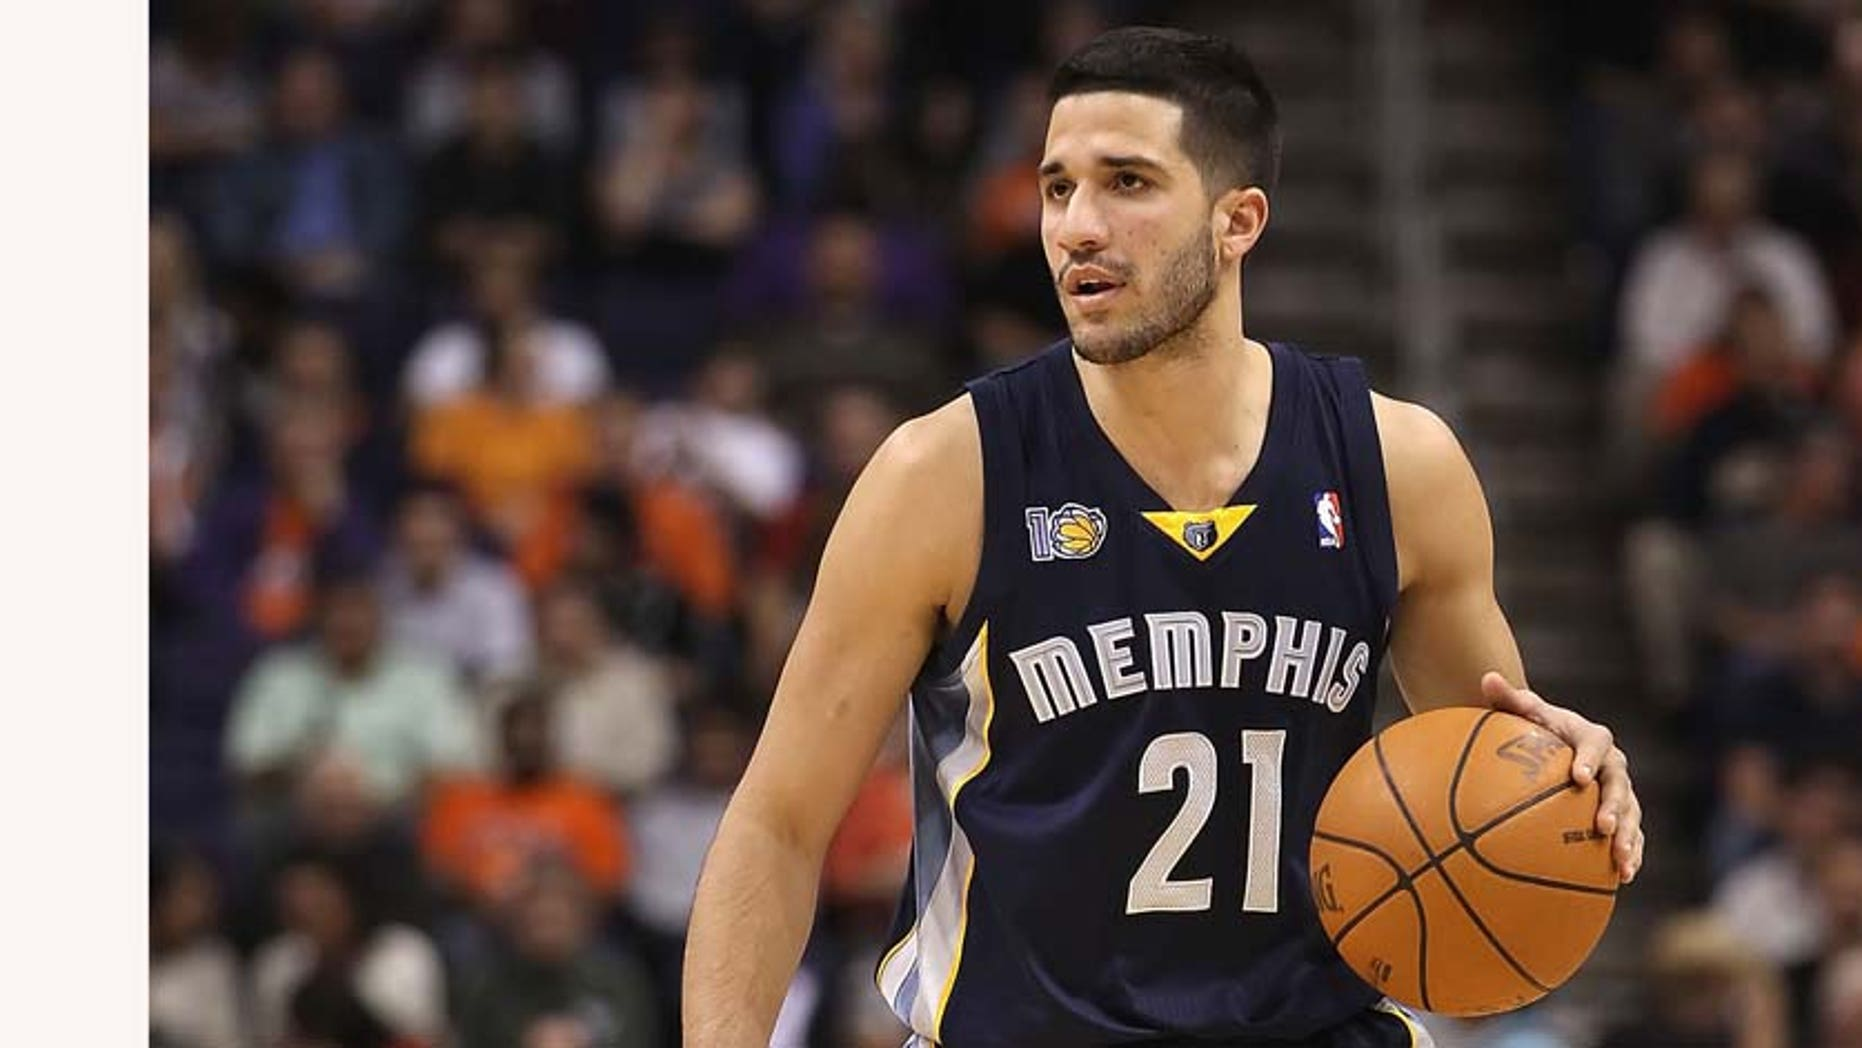 PHOENIX - DECEMBER 08:  Greivis Vasquez #21 of the Memphis Grizzlies handles the ball against the Phoenix Suns during the NBA game at US Airways Center on December 8, 2010 in Phoenix, Arizona. NOTE TO USER: User expressly acknowledges and agrees that, by downloading and or using this photograph, User is consenting to the terms and conditions of the Getty Images License Agreement.  (Photo by Christian Petersen/Getty Images)